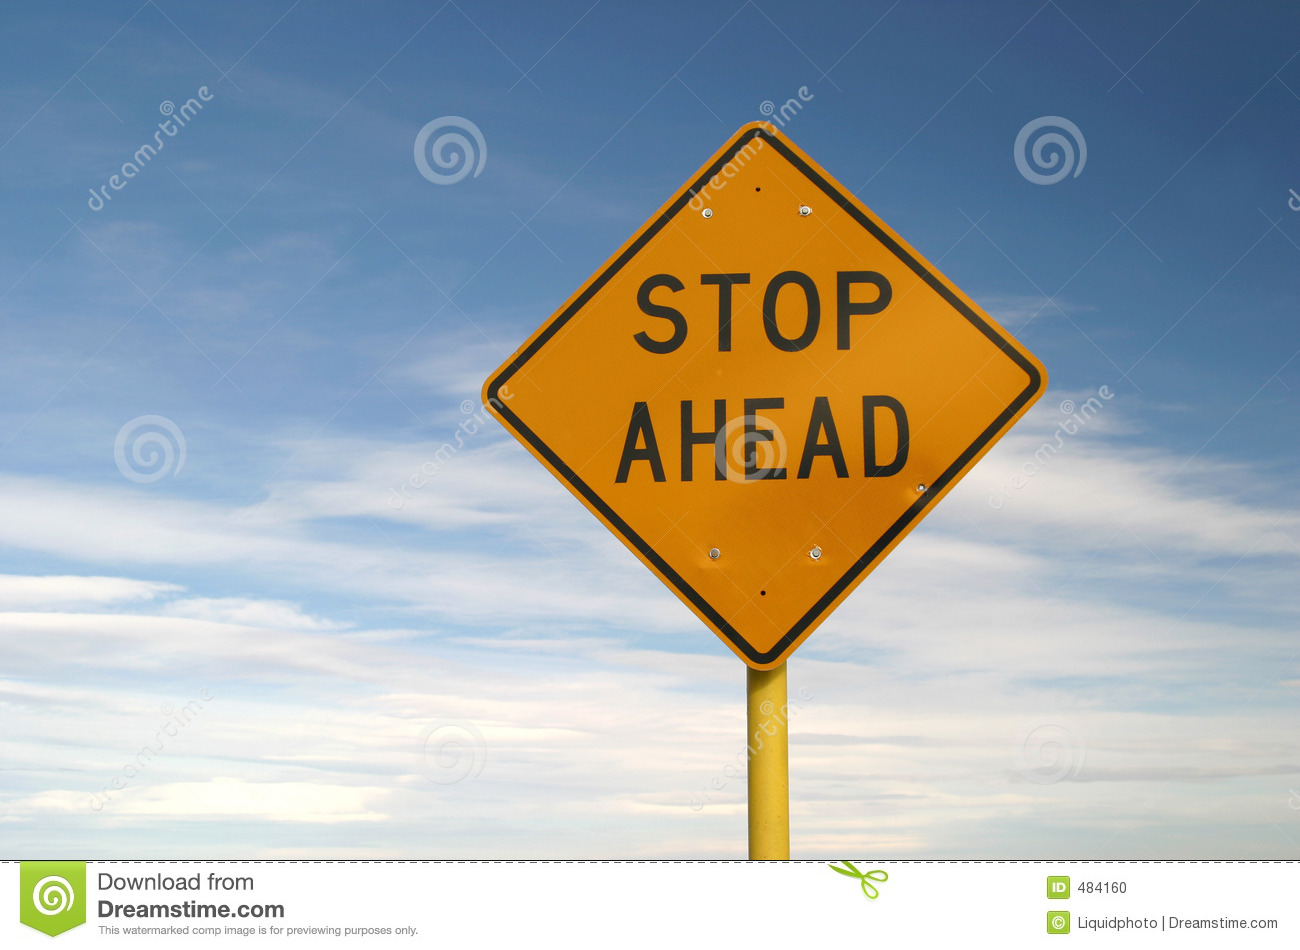 Yellow Sign Stop Ahead Stock Photo - Image: 484160